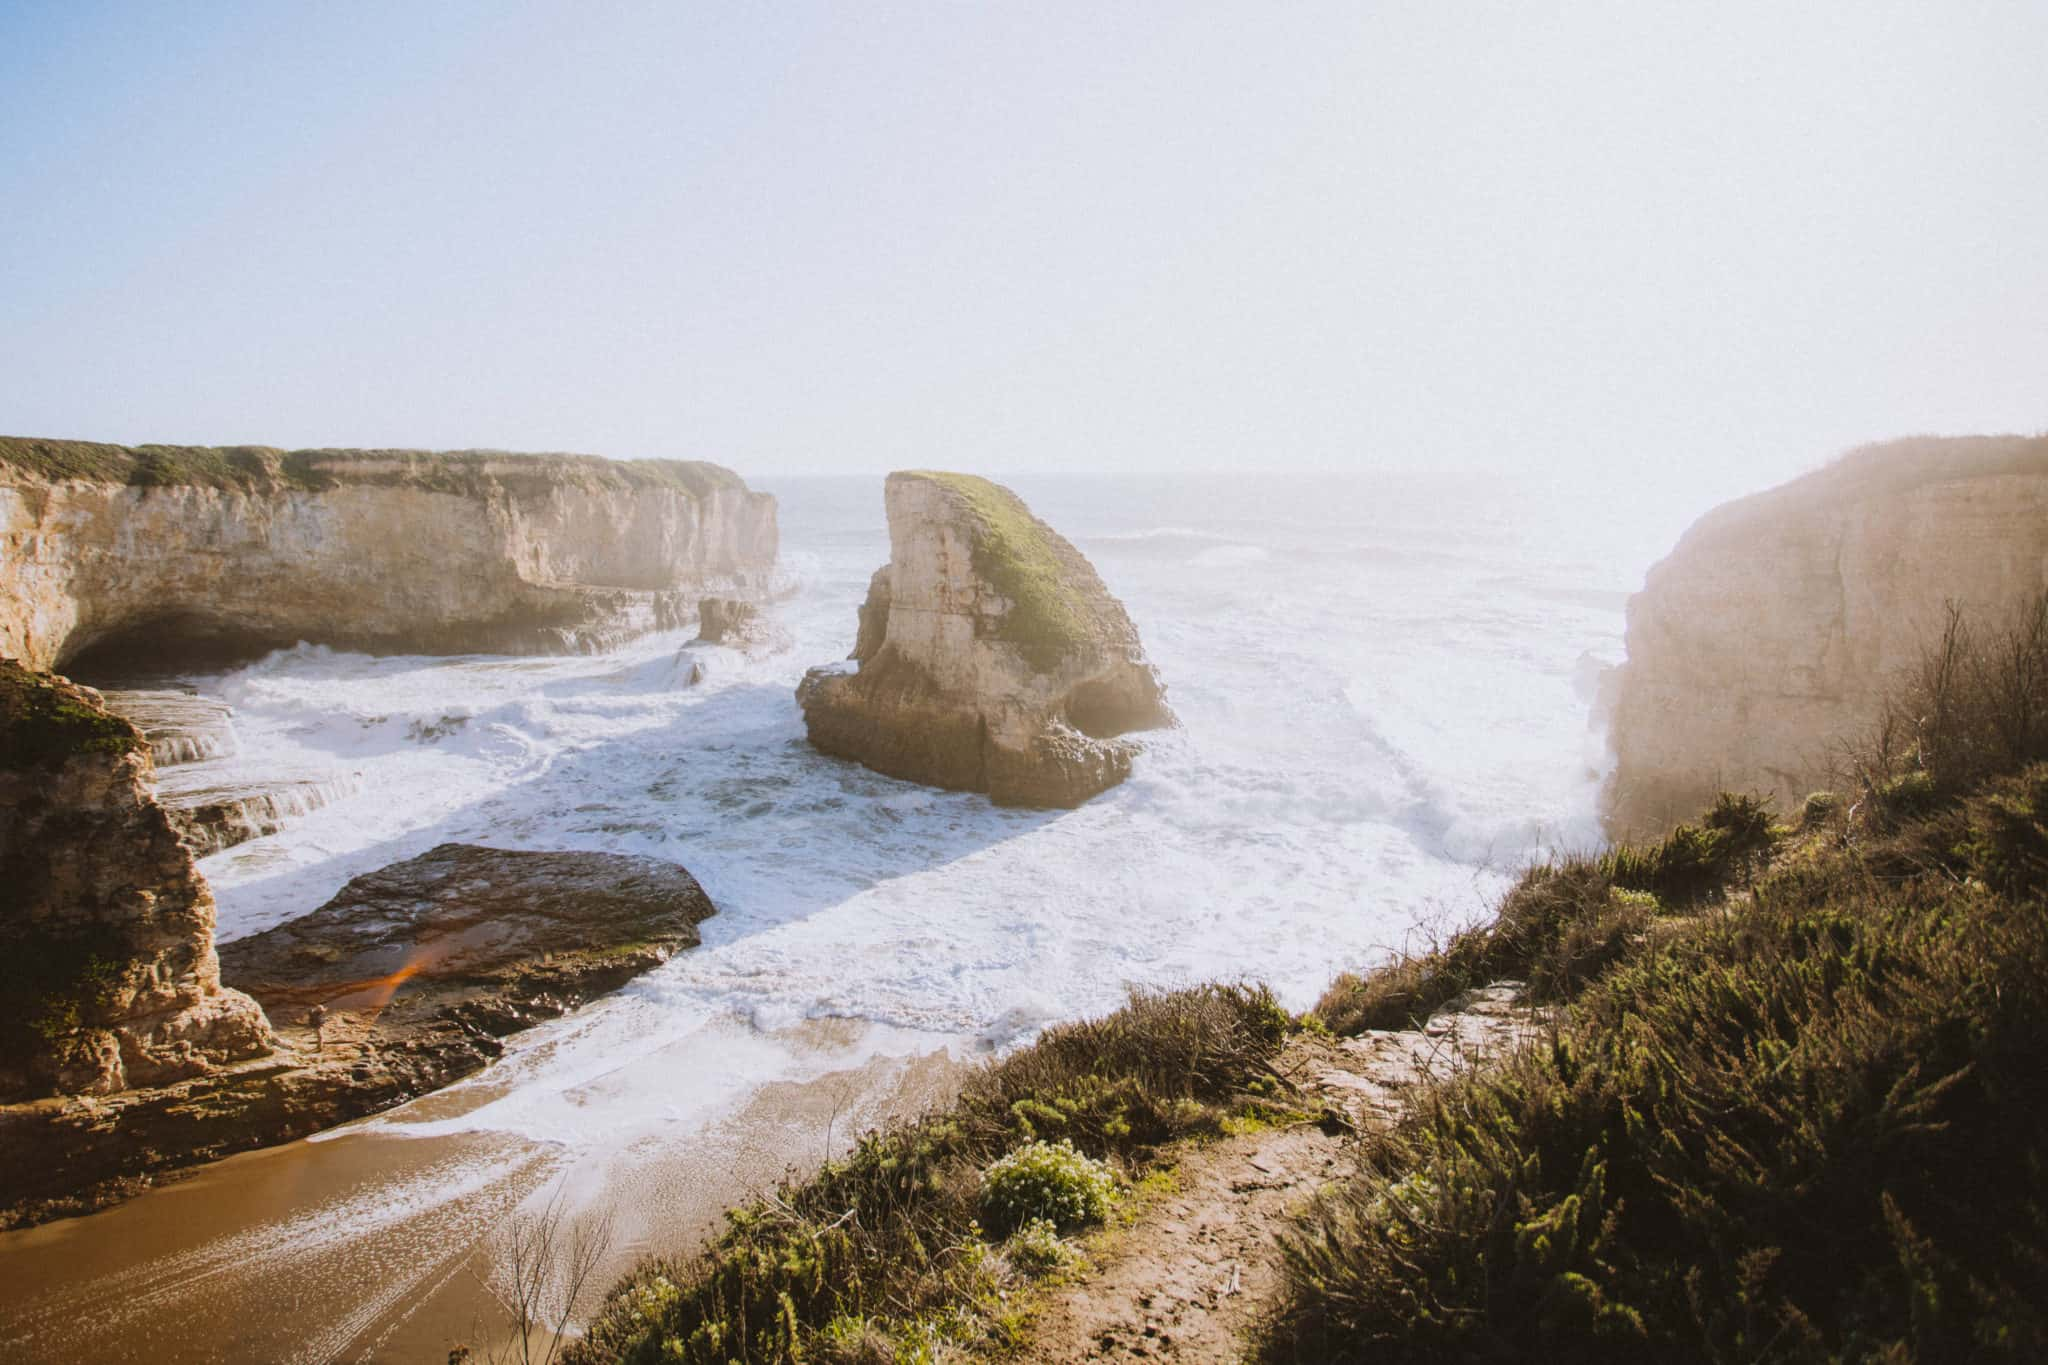 What To Expect At California's Shark Fin Cove